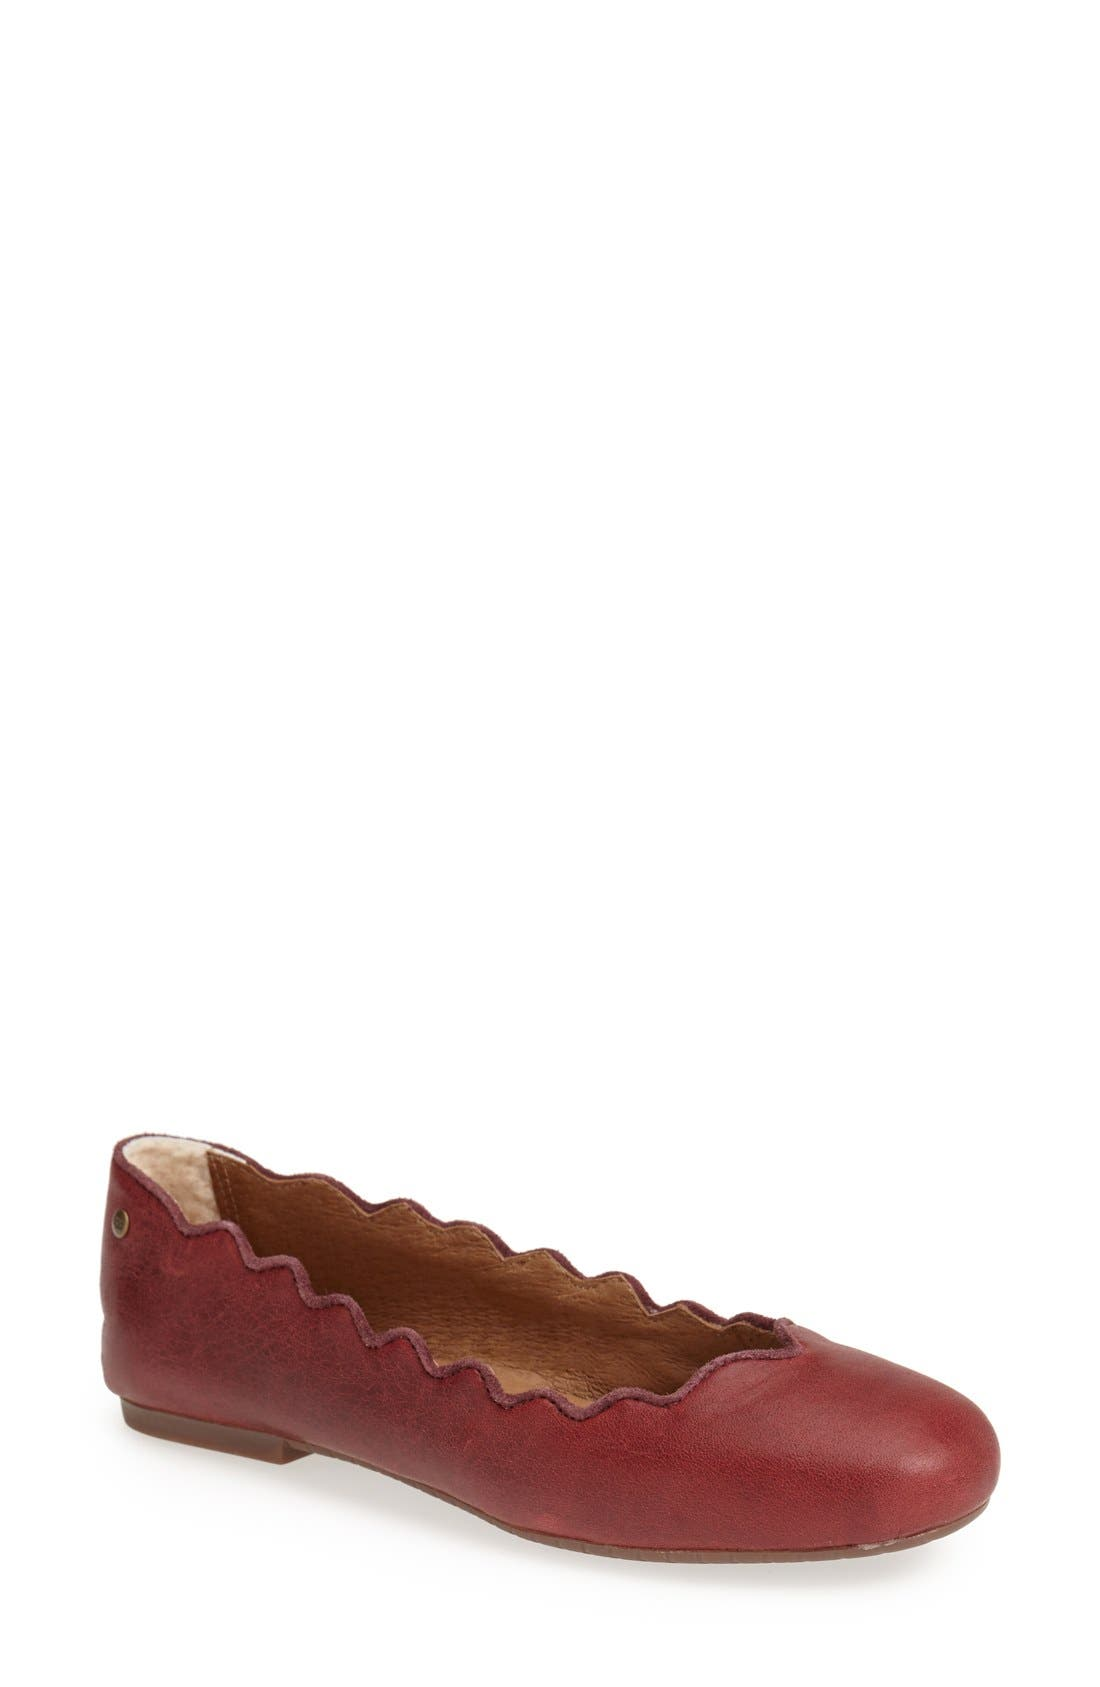 Alternate Image 1 Selected - UGG® Australia 'Chandra' Scalloped Flat (Women)